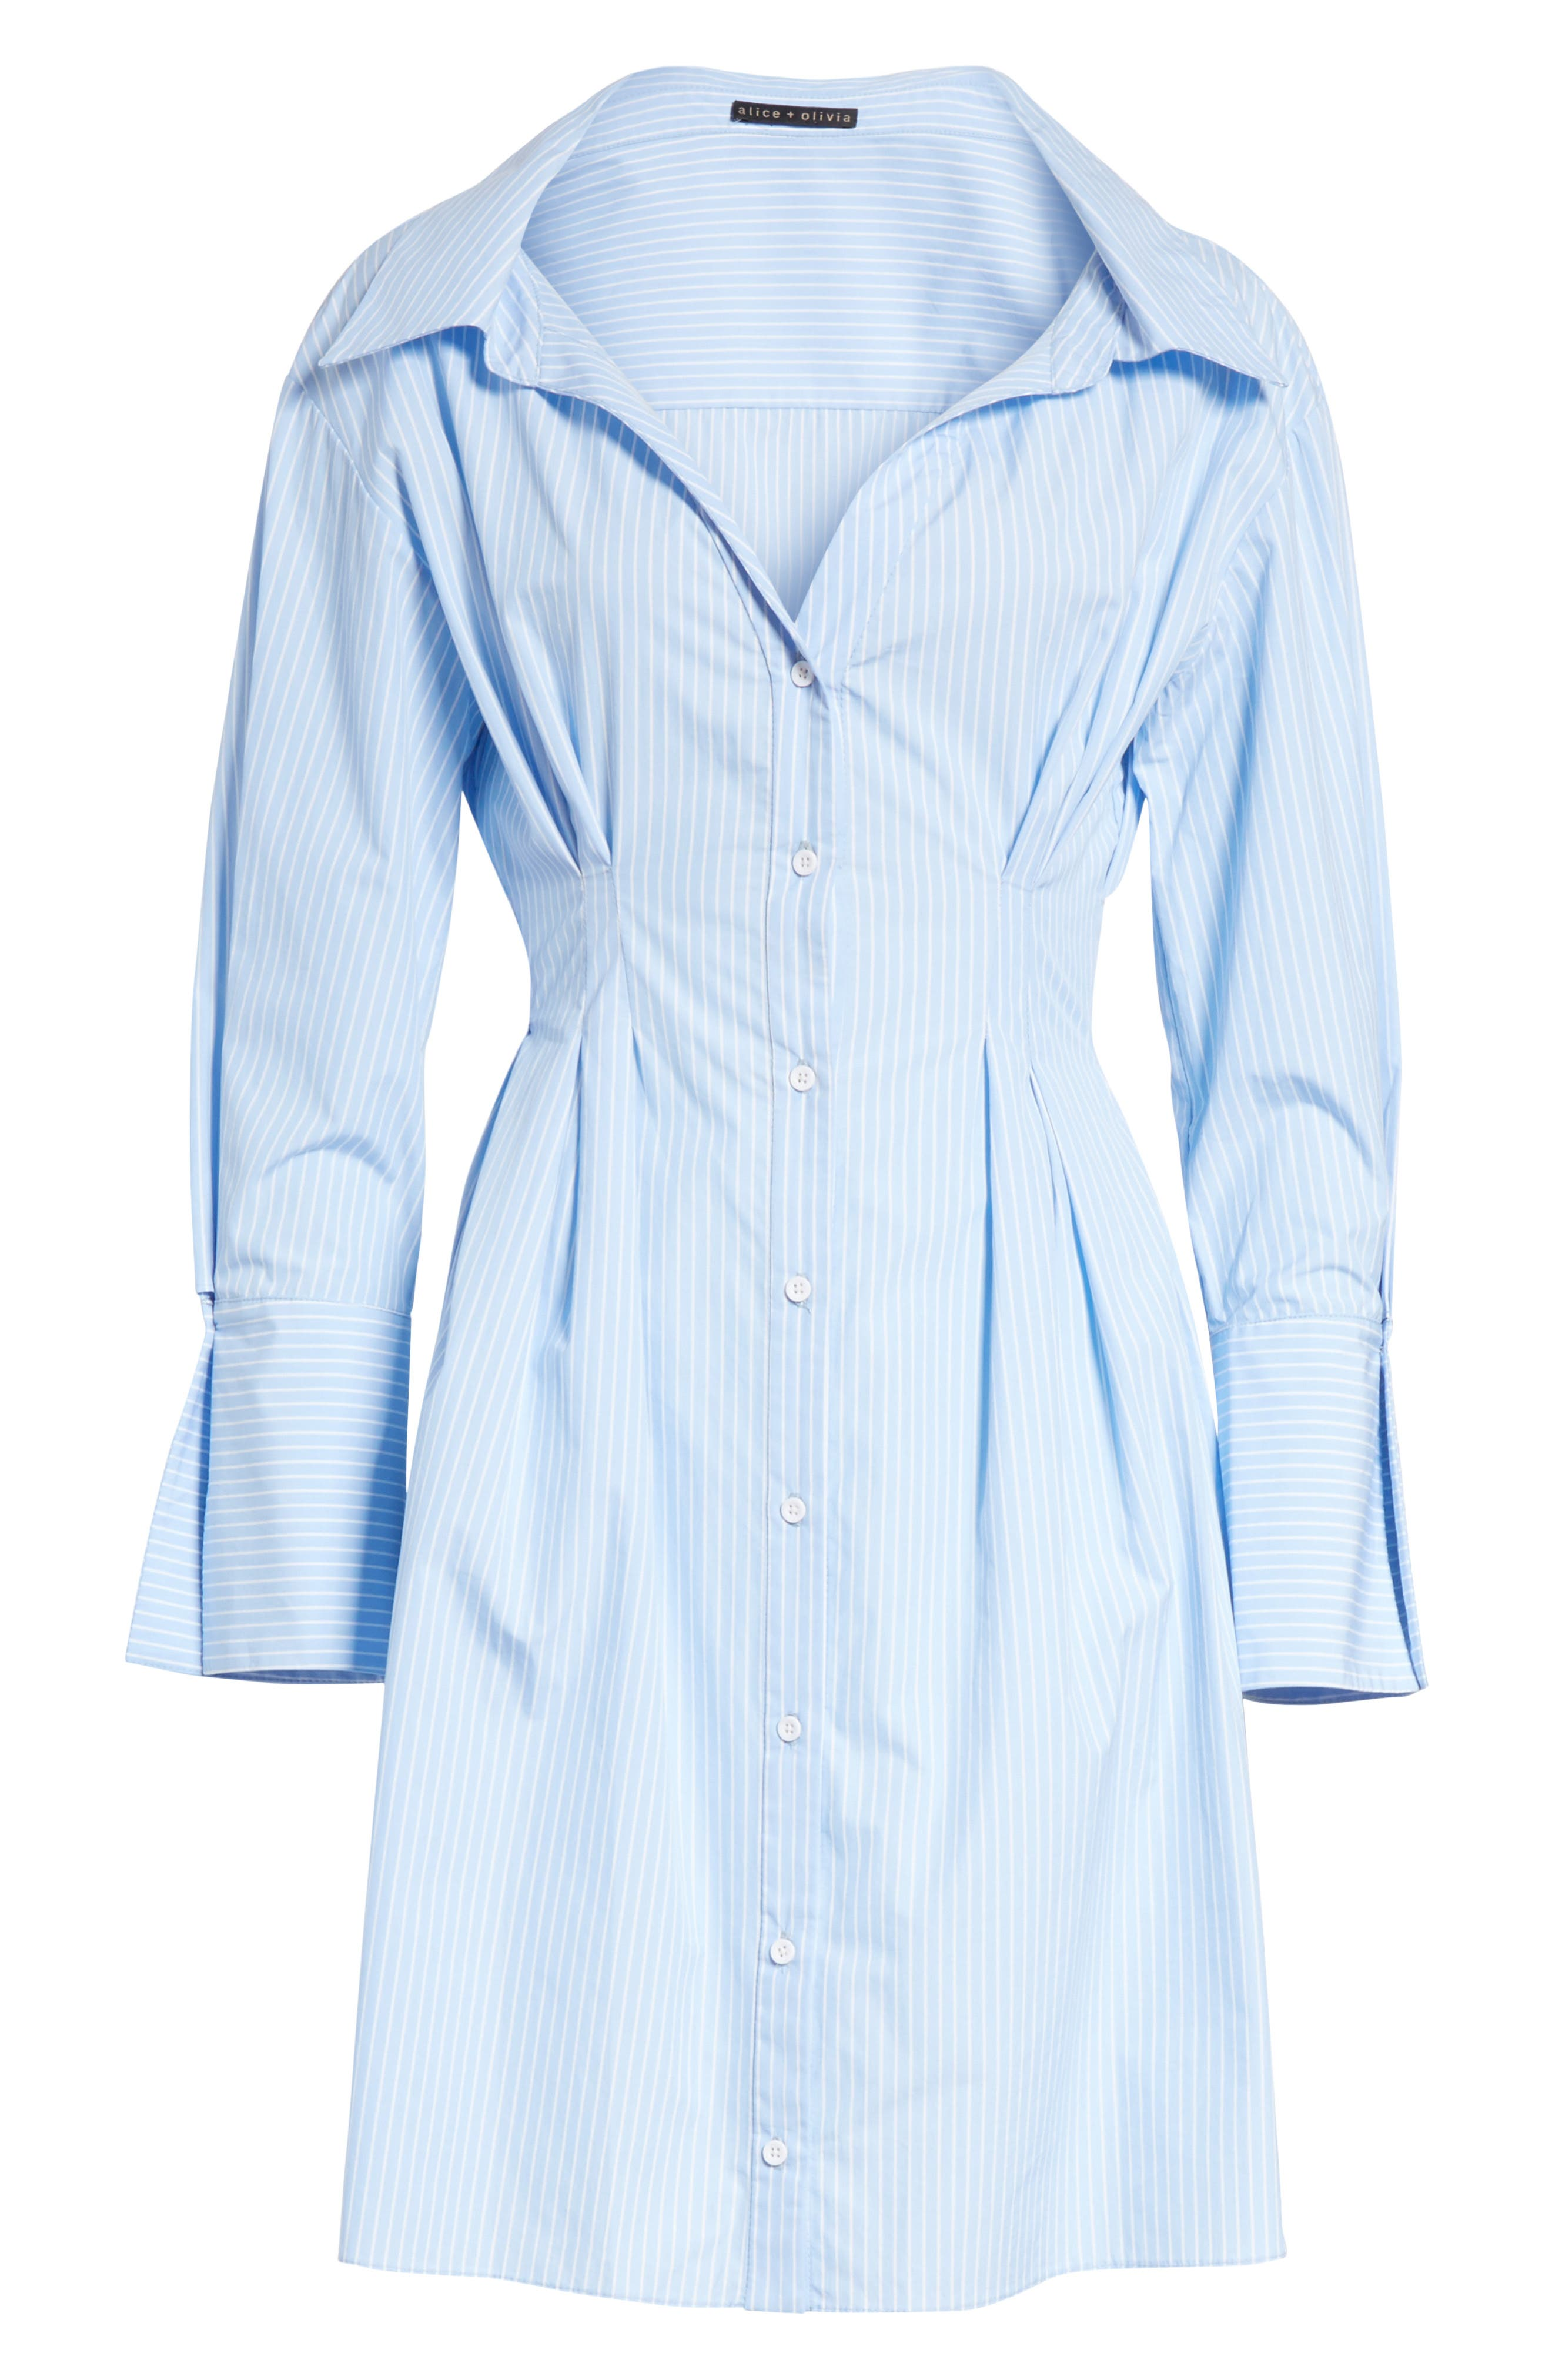 Vergie Seamed Shirtdress,                             Alternate thumbnail 6, color,                             490